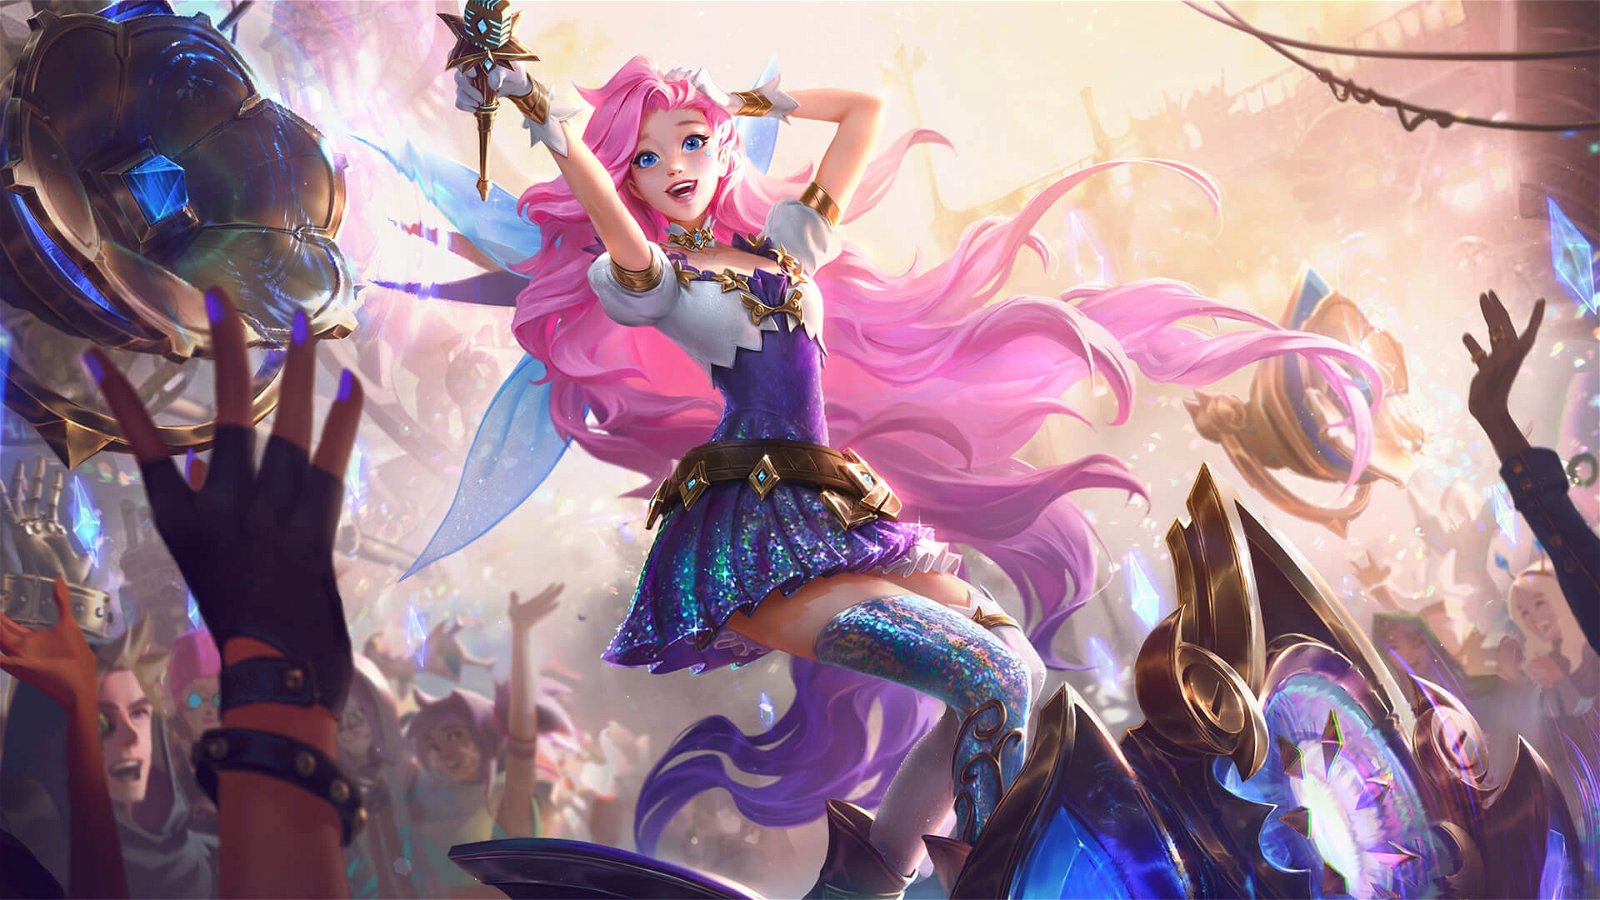 League of Legends' New Character Allegedly Based on Real Person